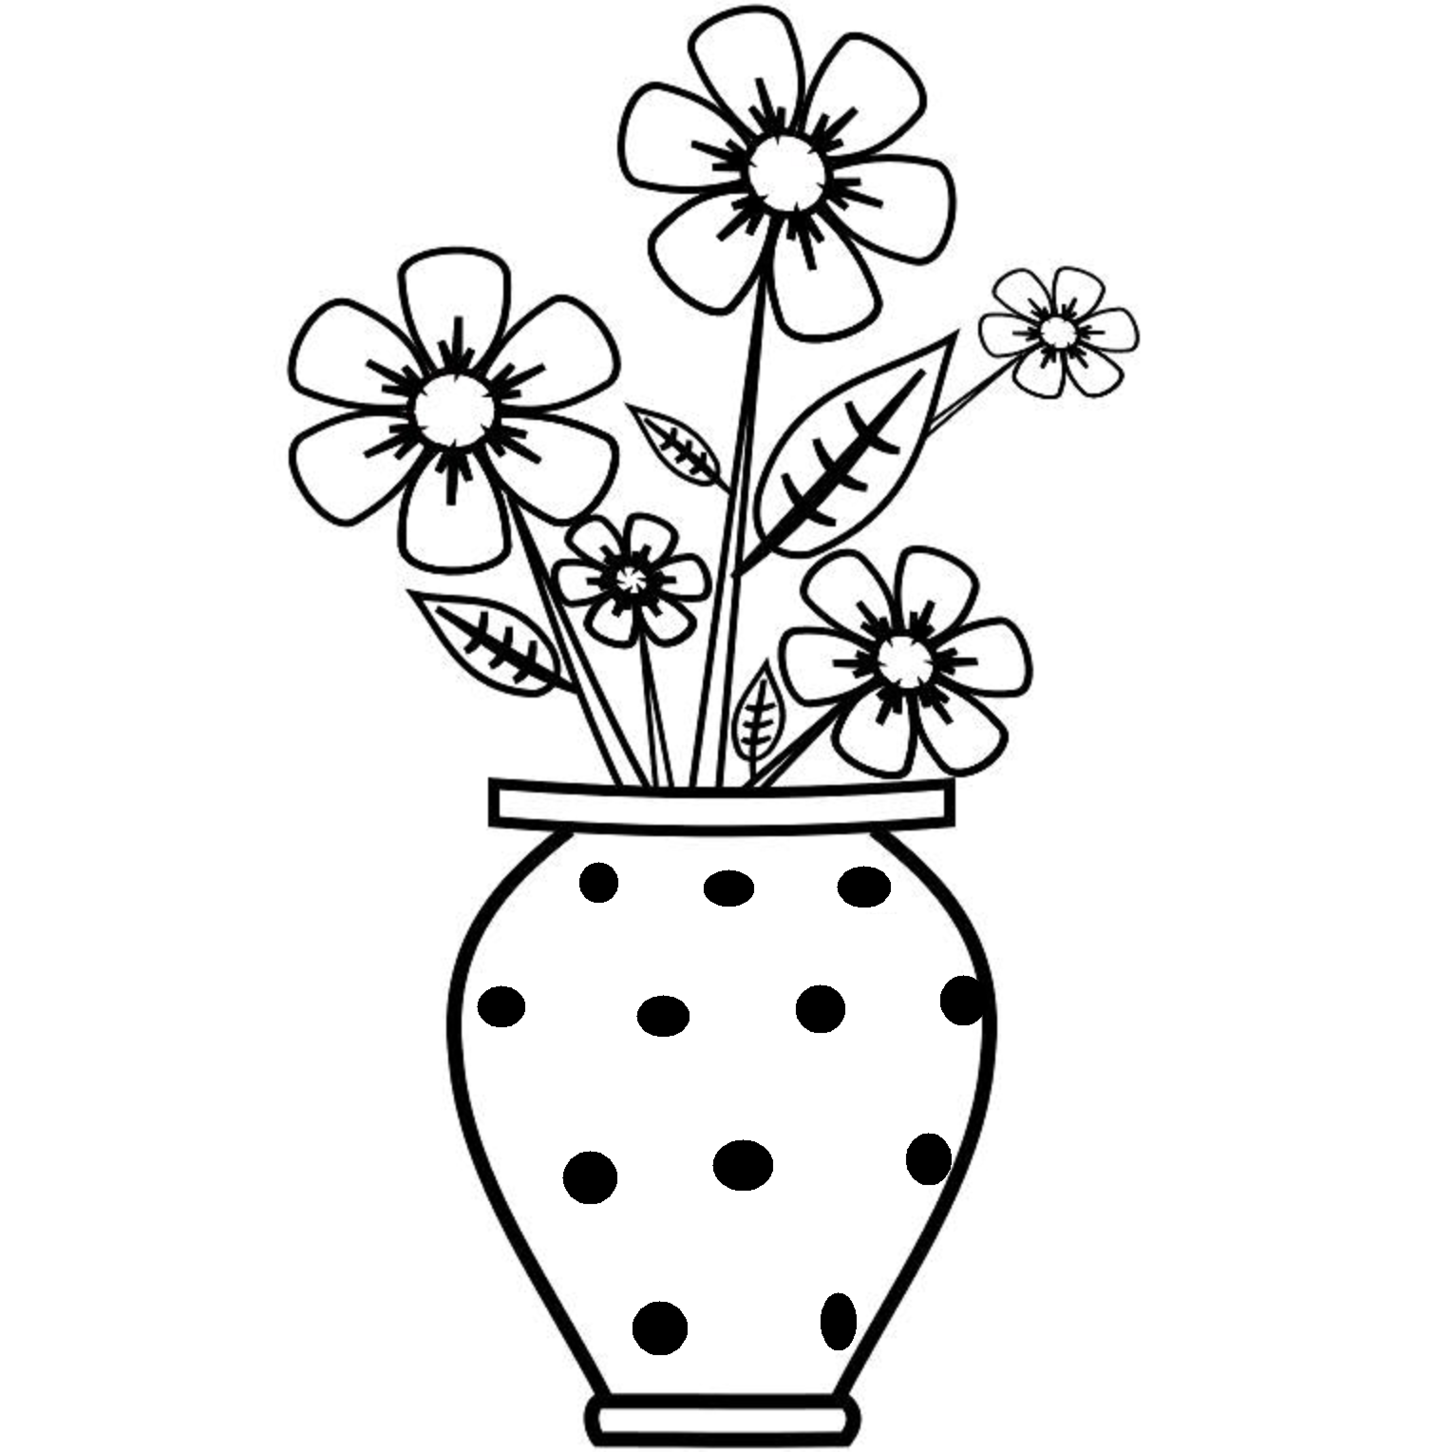 Real white vase clipart image library stock Flower vase clipart black and white - ClipartFest image library stock